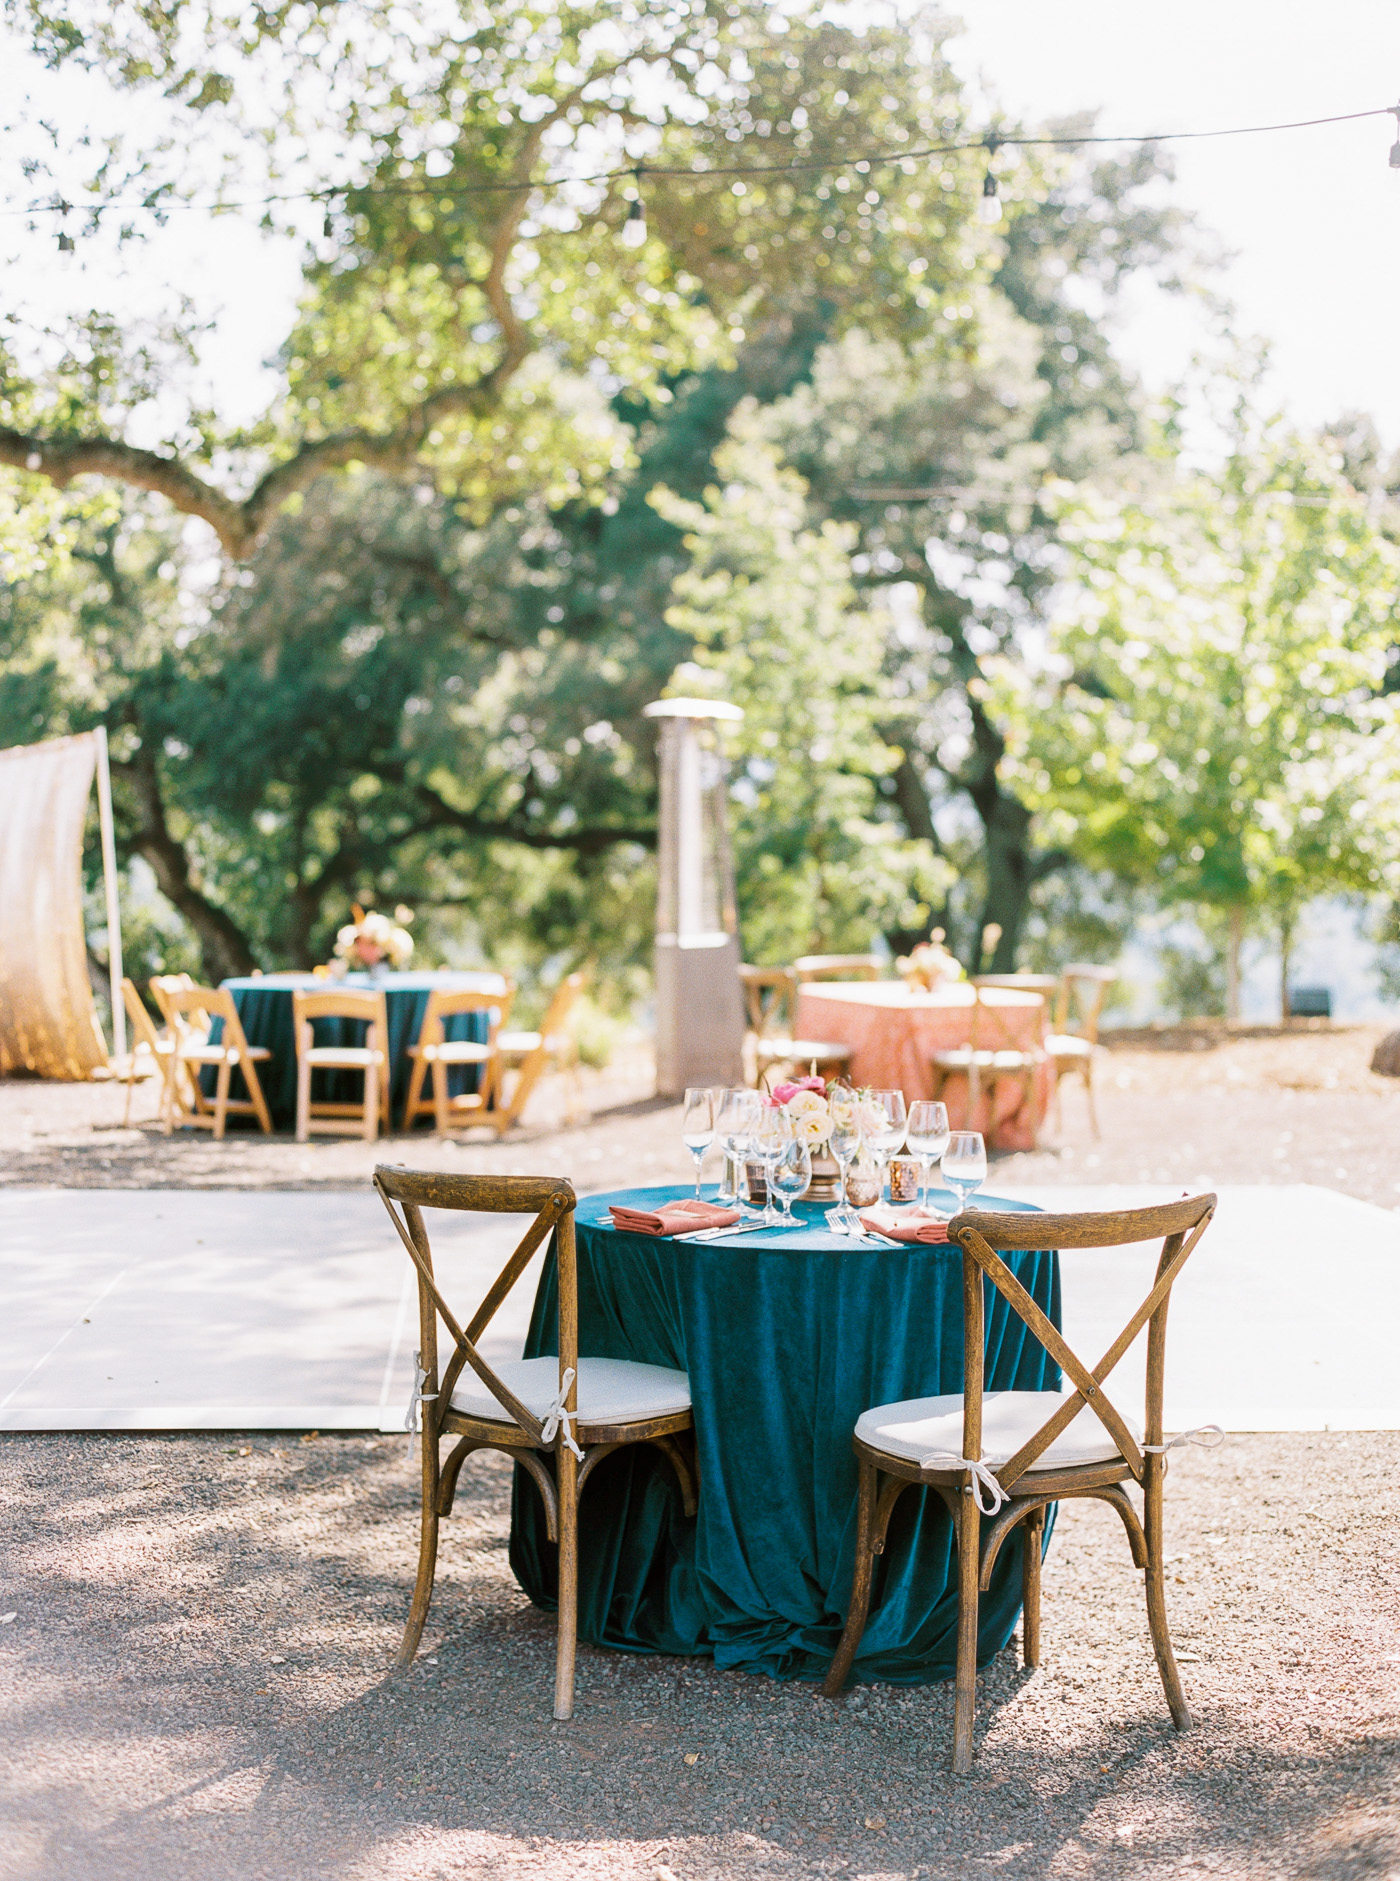 Kunde winery wedding-94.jpg